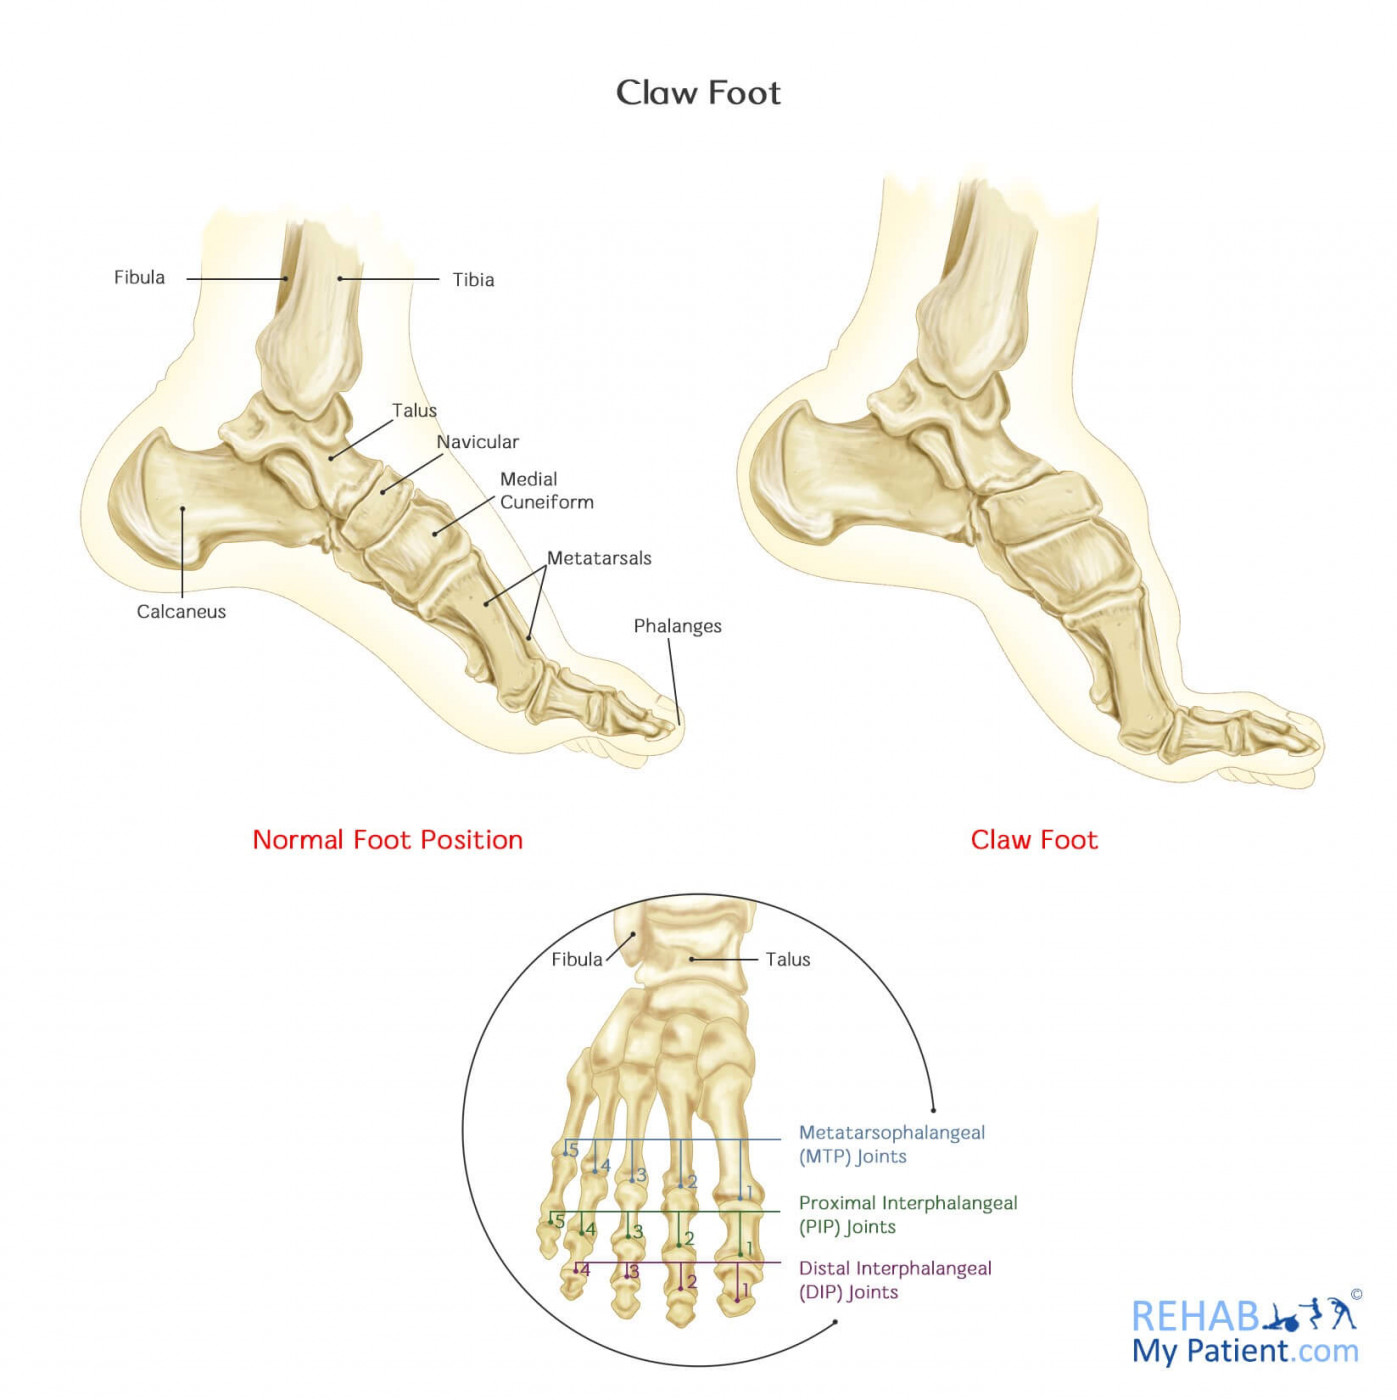 Claw Foot Rehab My Patient